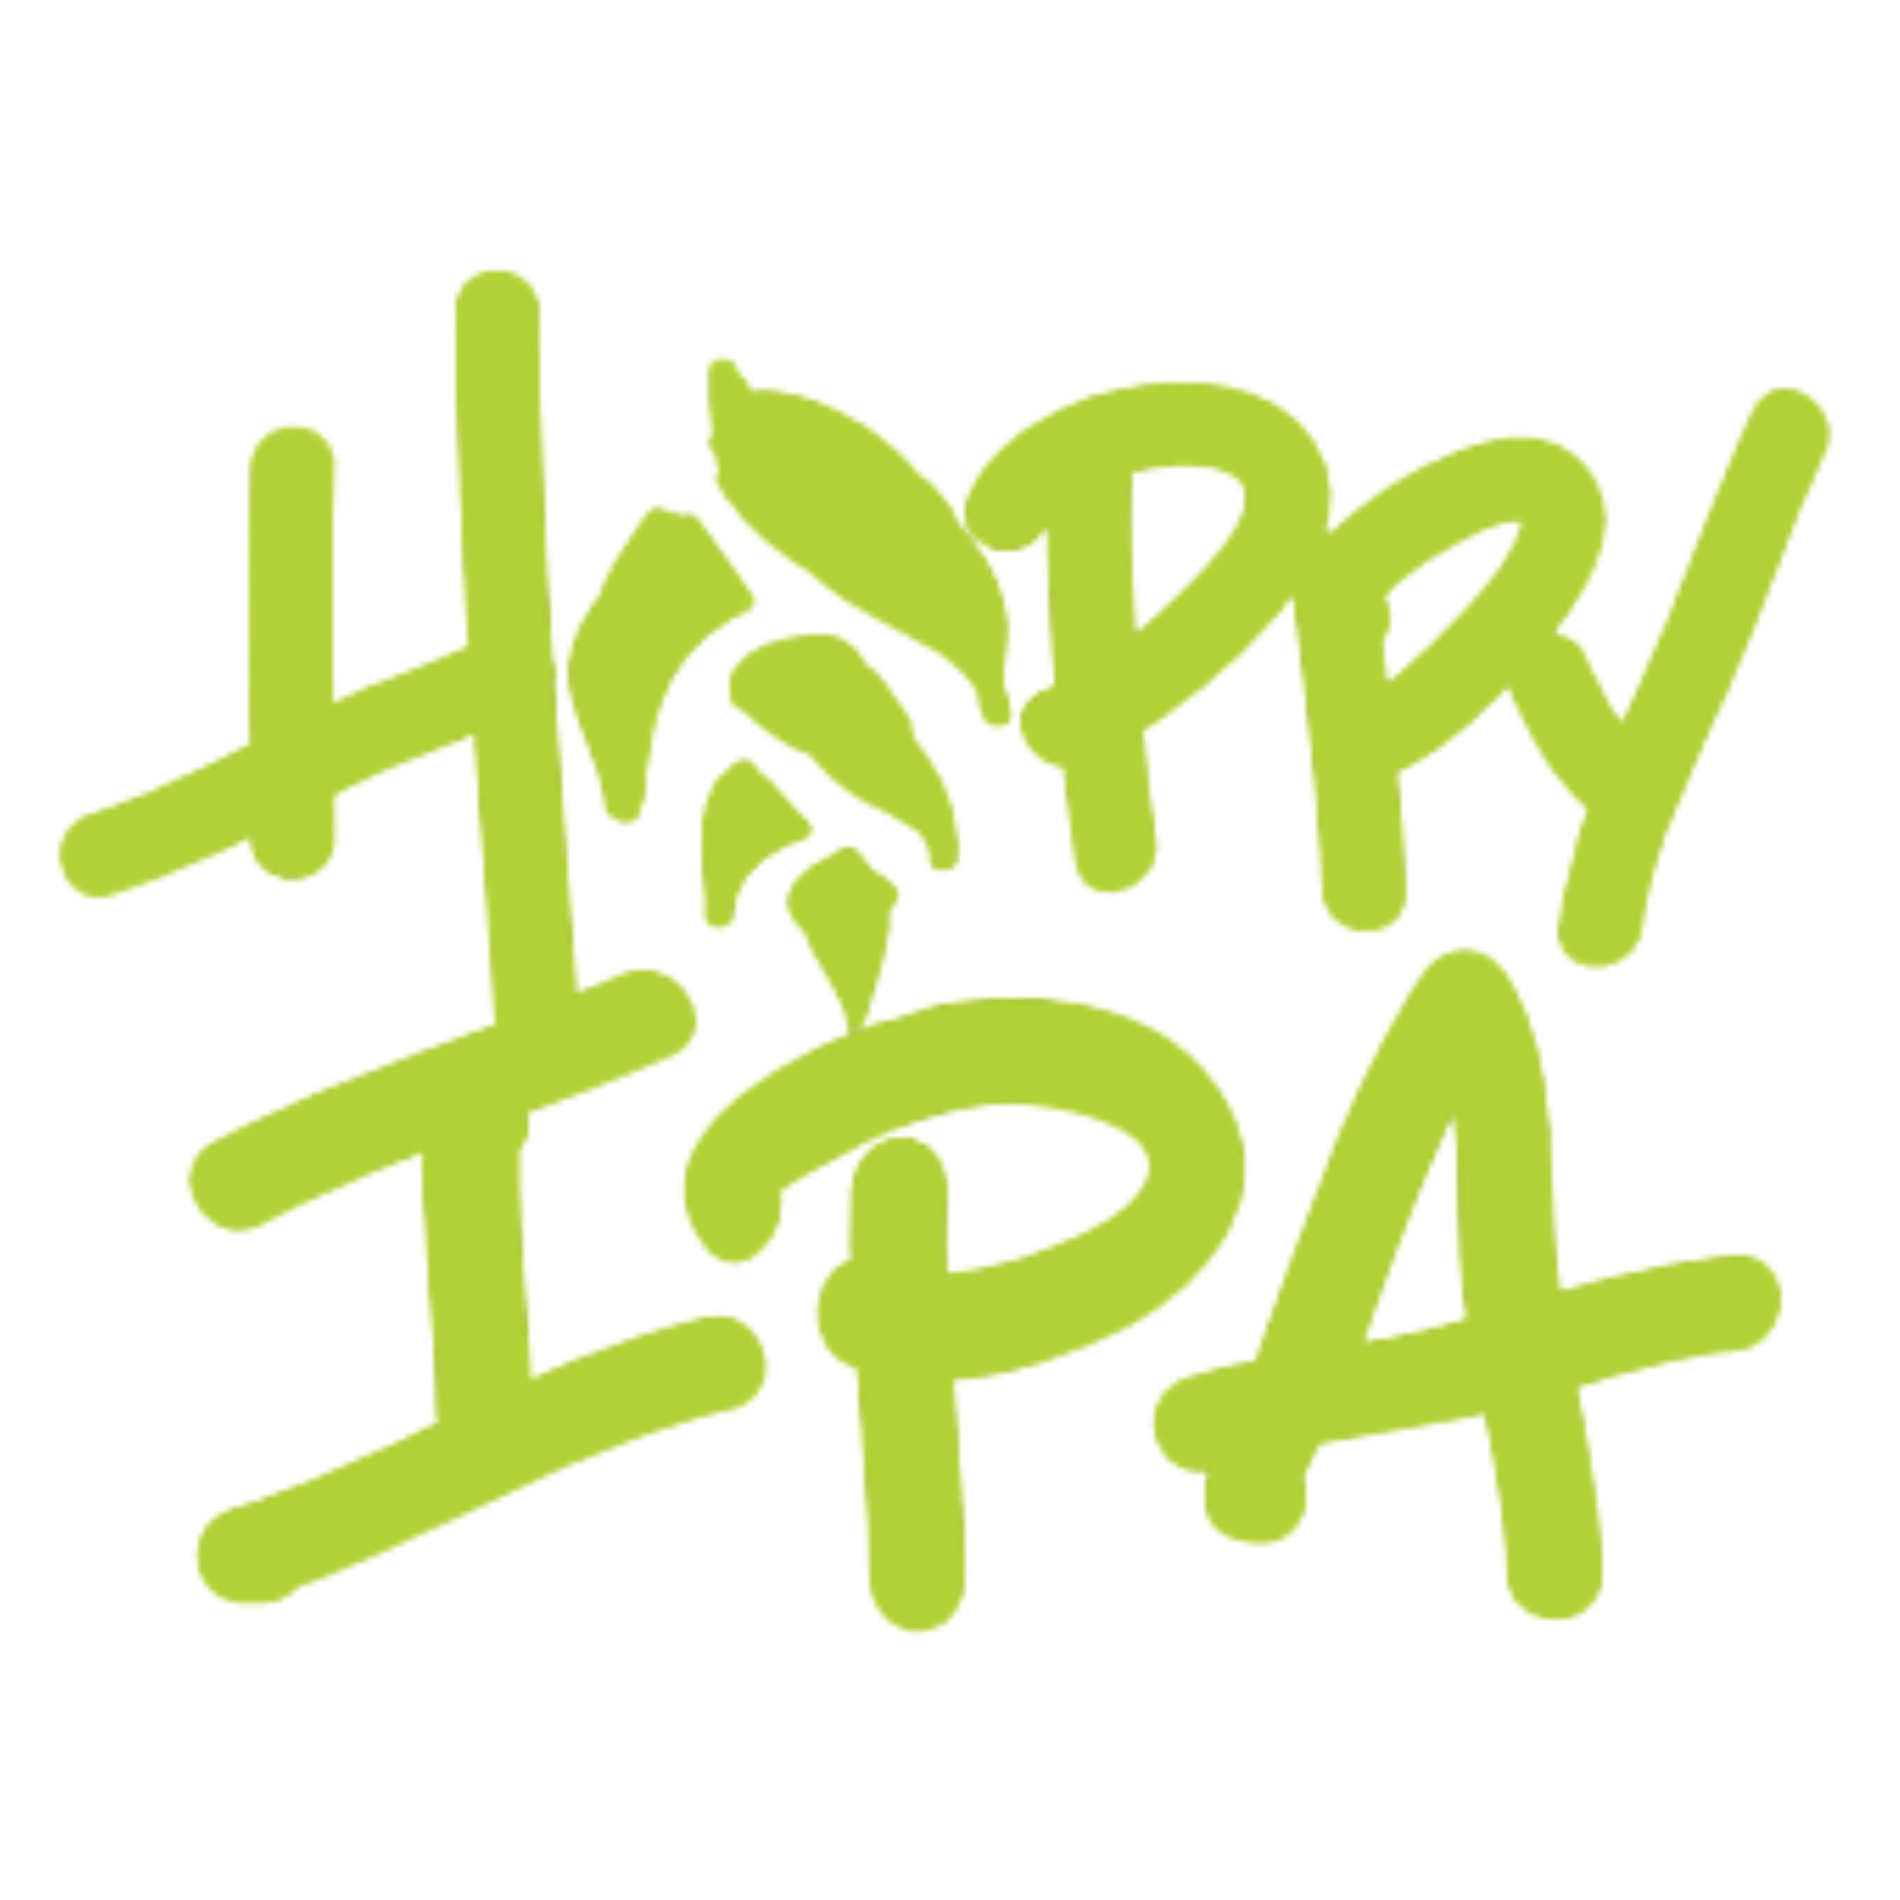 Hop For fun - Hoppy Ipa